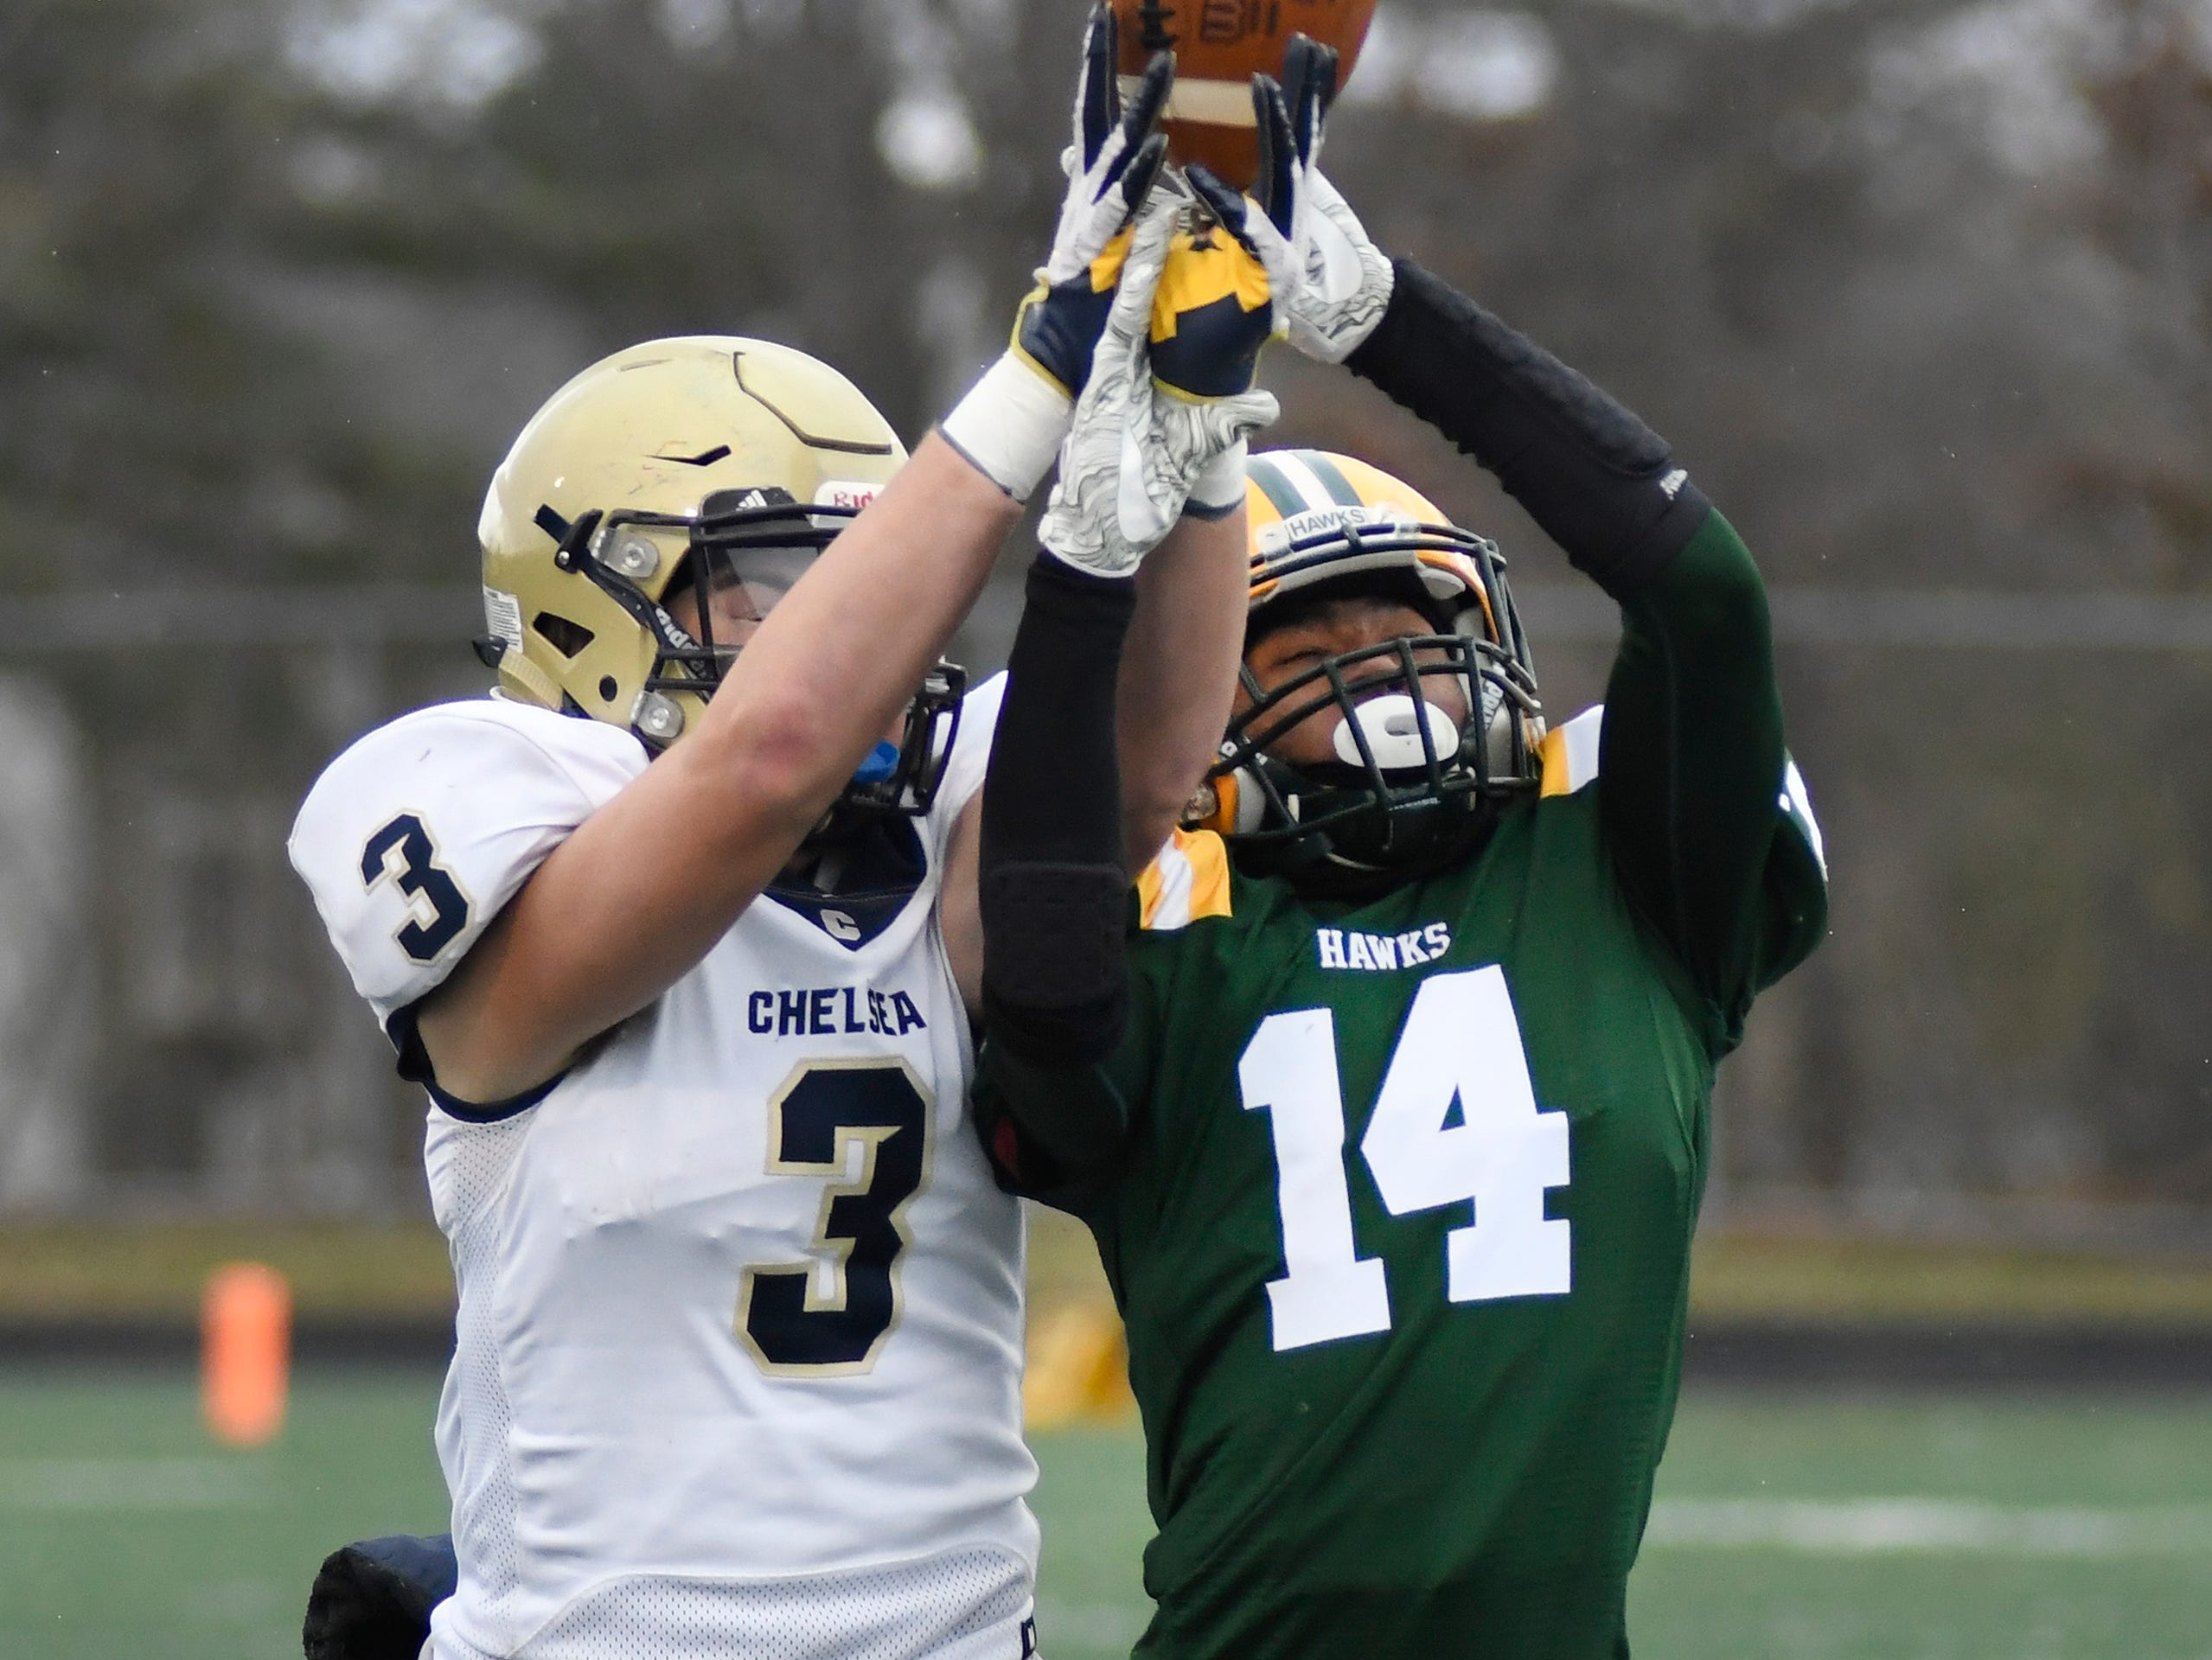 Chelsea tight end Nick Christian (3) has a pass knocked away from him by Farmington Hills Harrison defensive back Javair Beeler (14) in the fourth quarter.